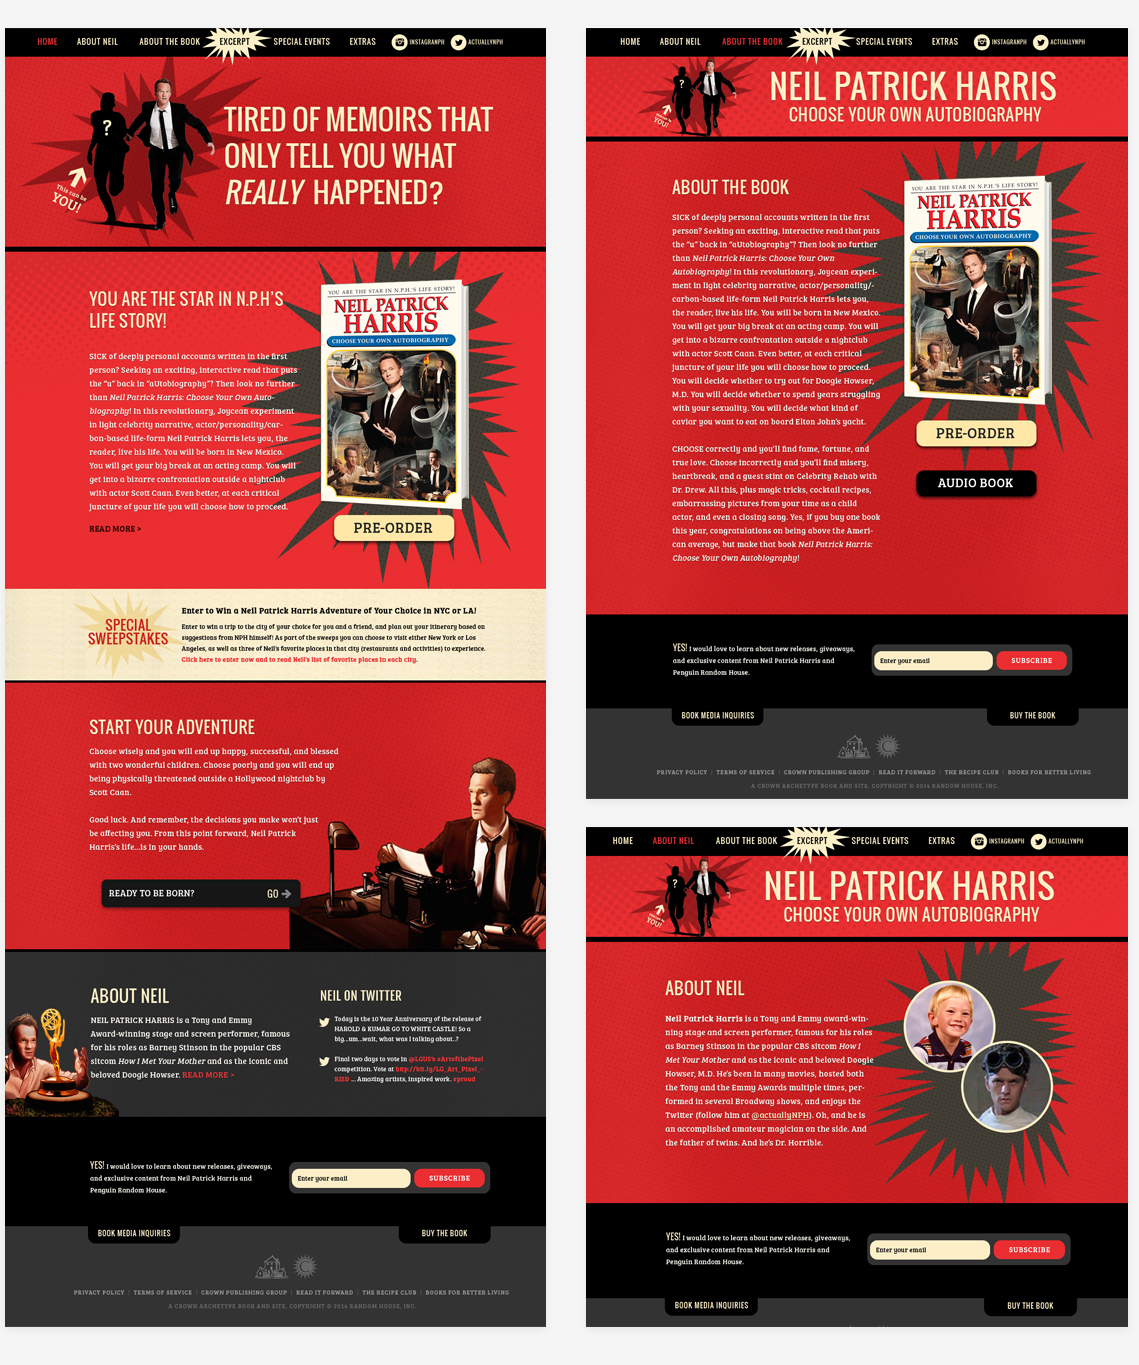 Details of the website design for Neil Patrick Harris